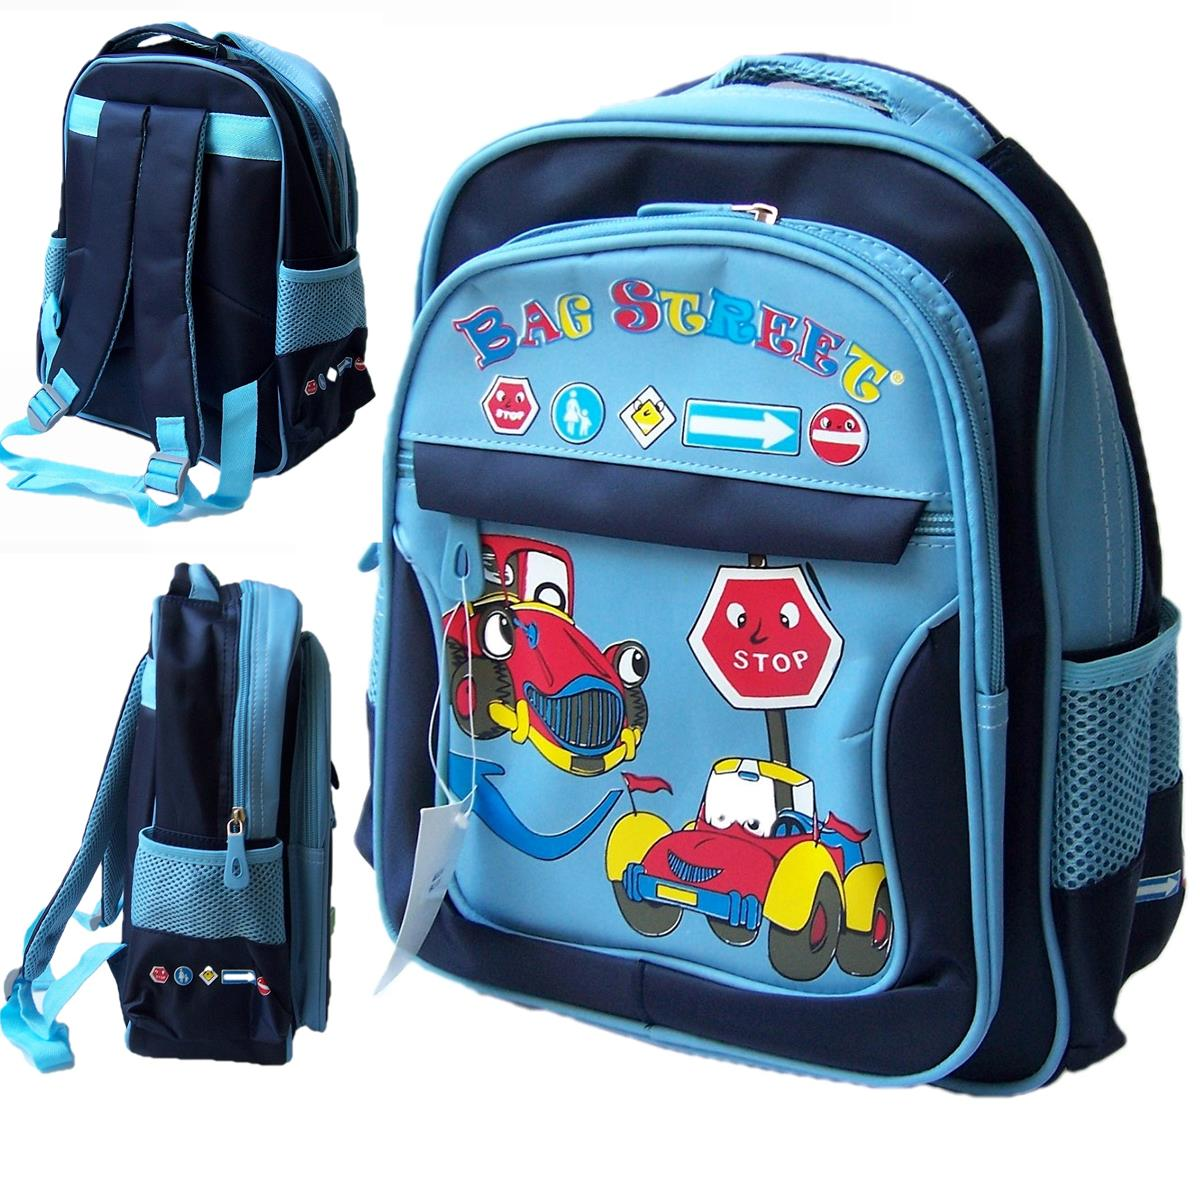 rucksack kinder bagstreet reise kindergarten kinderrucksack jungen m dchen vru2 ebay. Black Bedroom Furniture Sets. Home Design Ideas